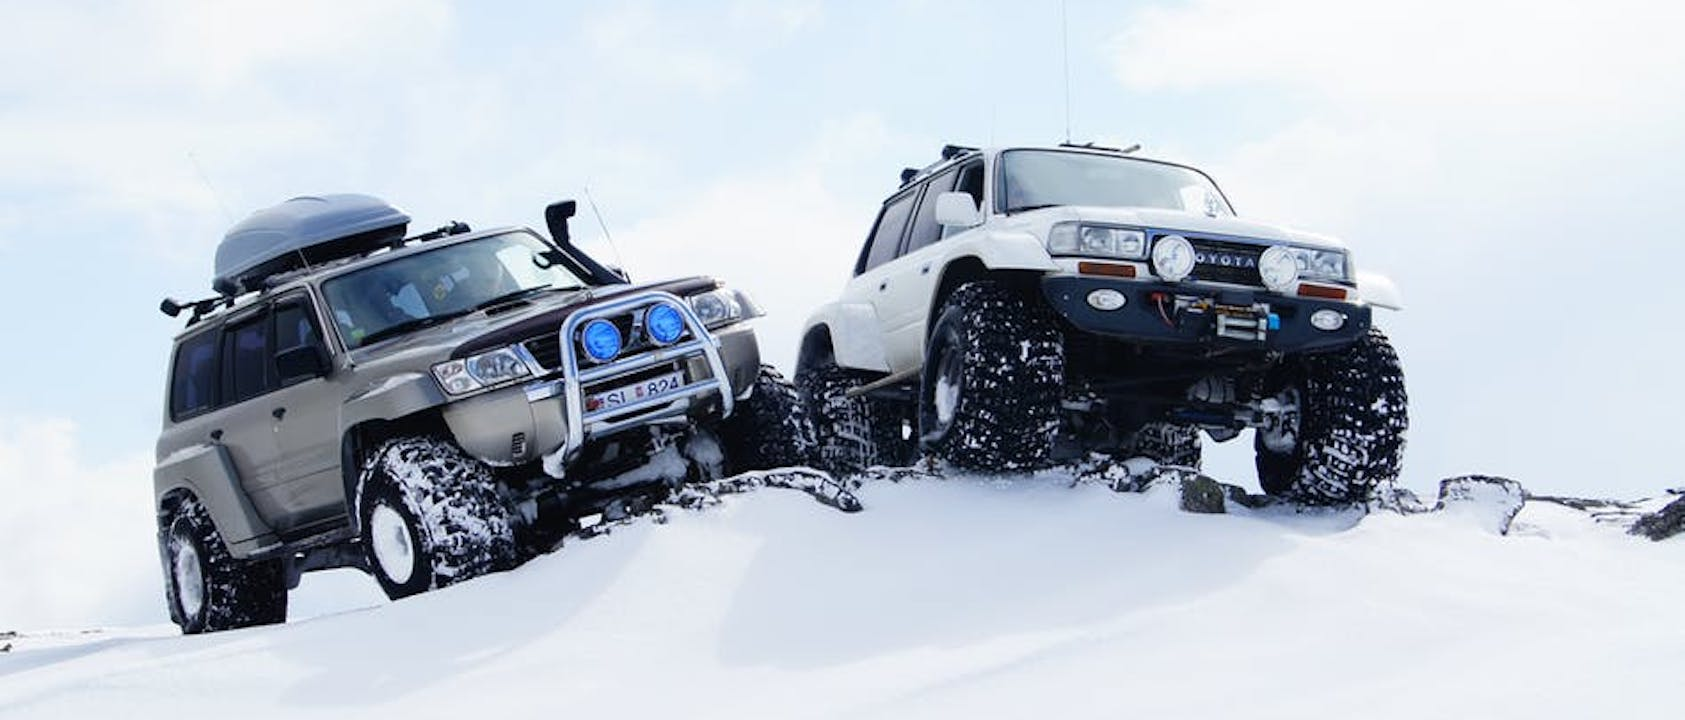 7 Day Self-Drive PREMIUM Iceland tour , 4 Wheel drive , zodiac , snow bike , helicopter and glacier ( 4 person )